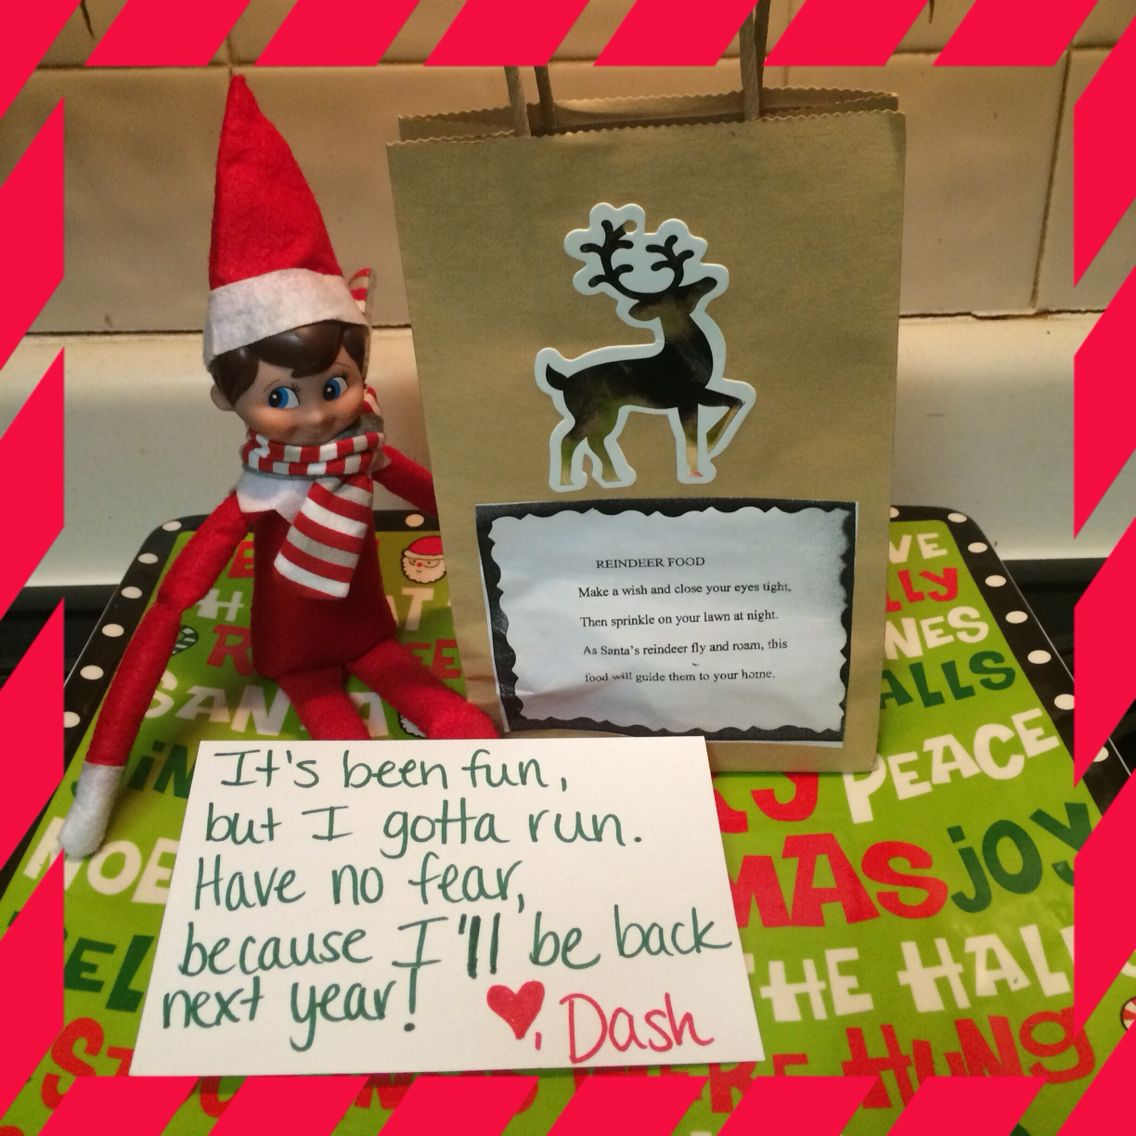 Elf on the shelf ideas. On the last day before the elf heads